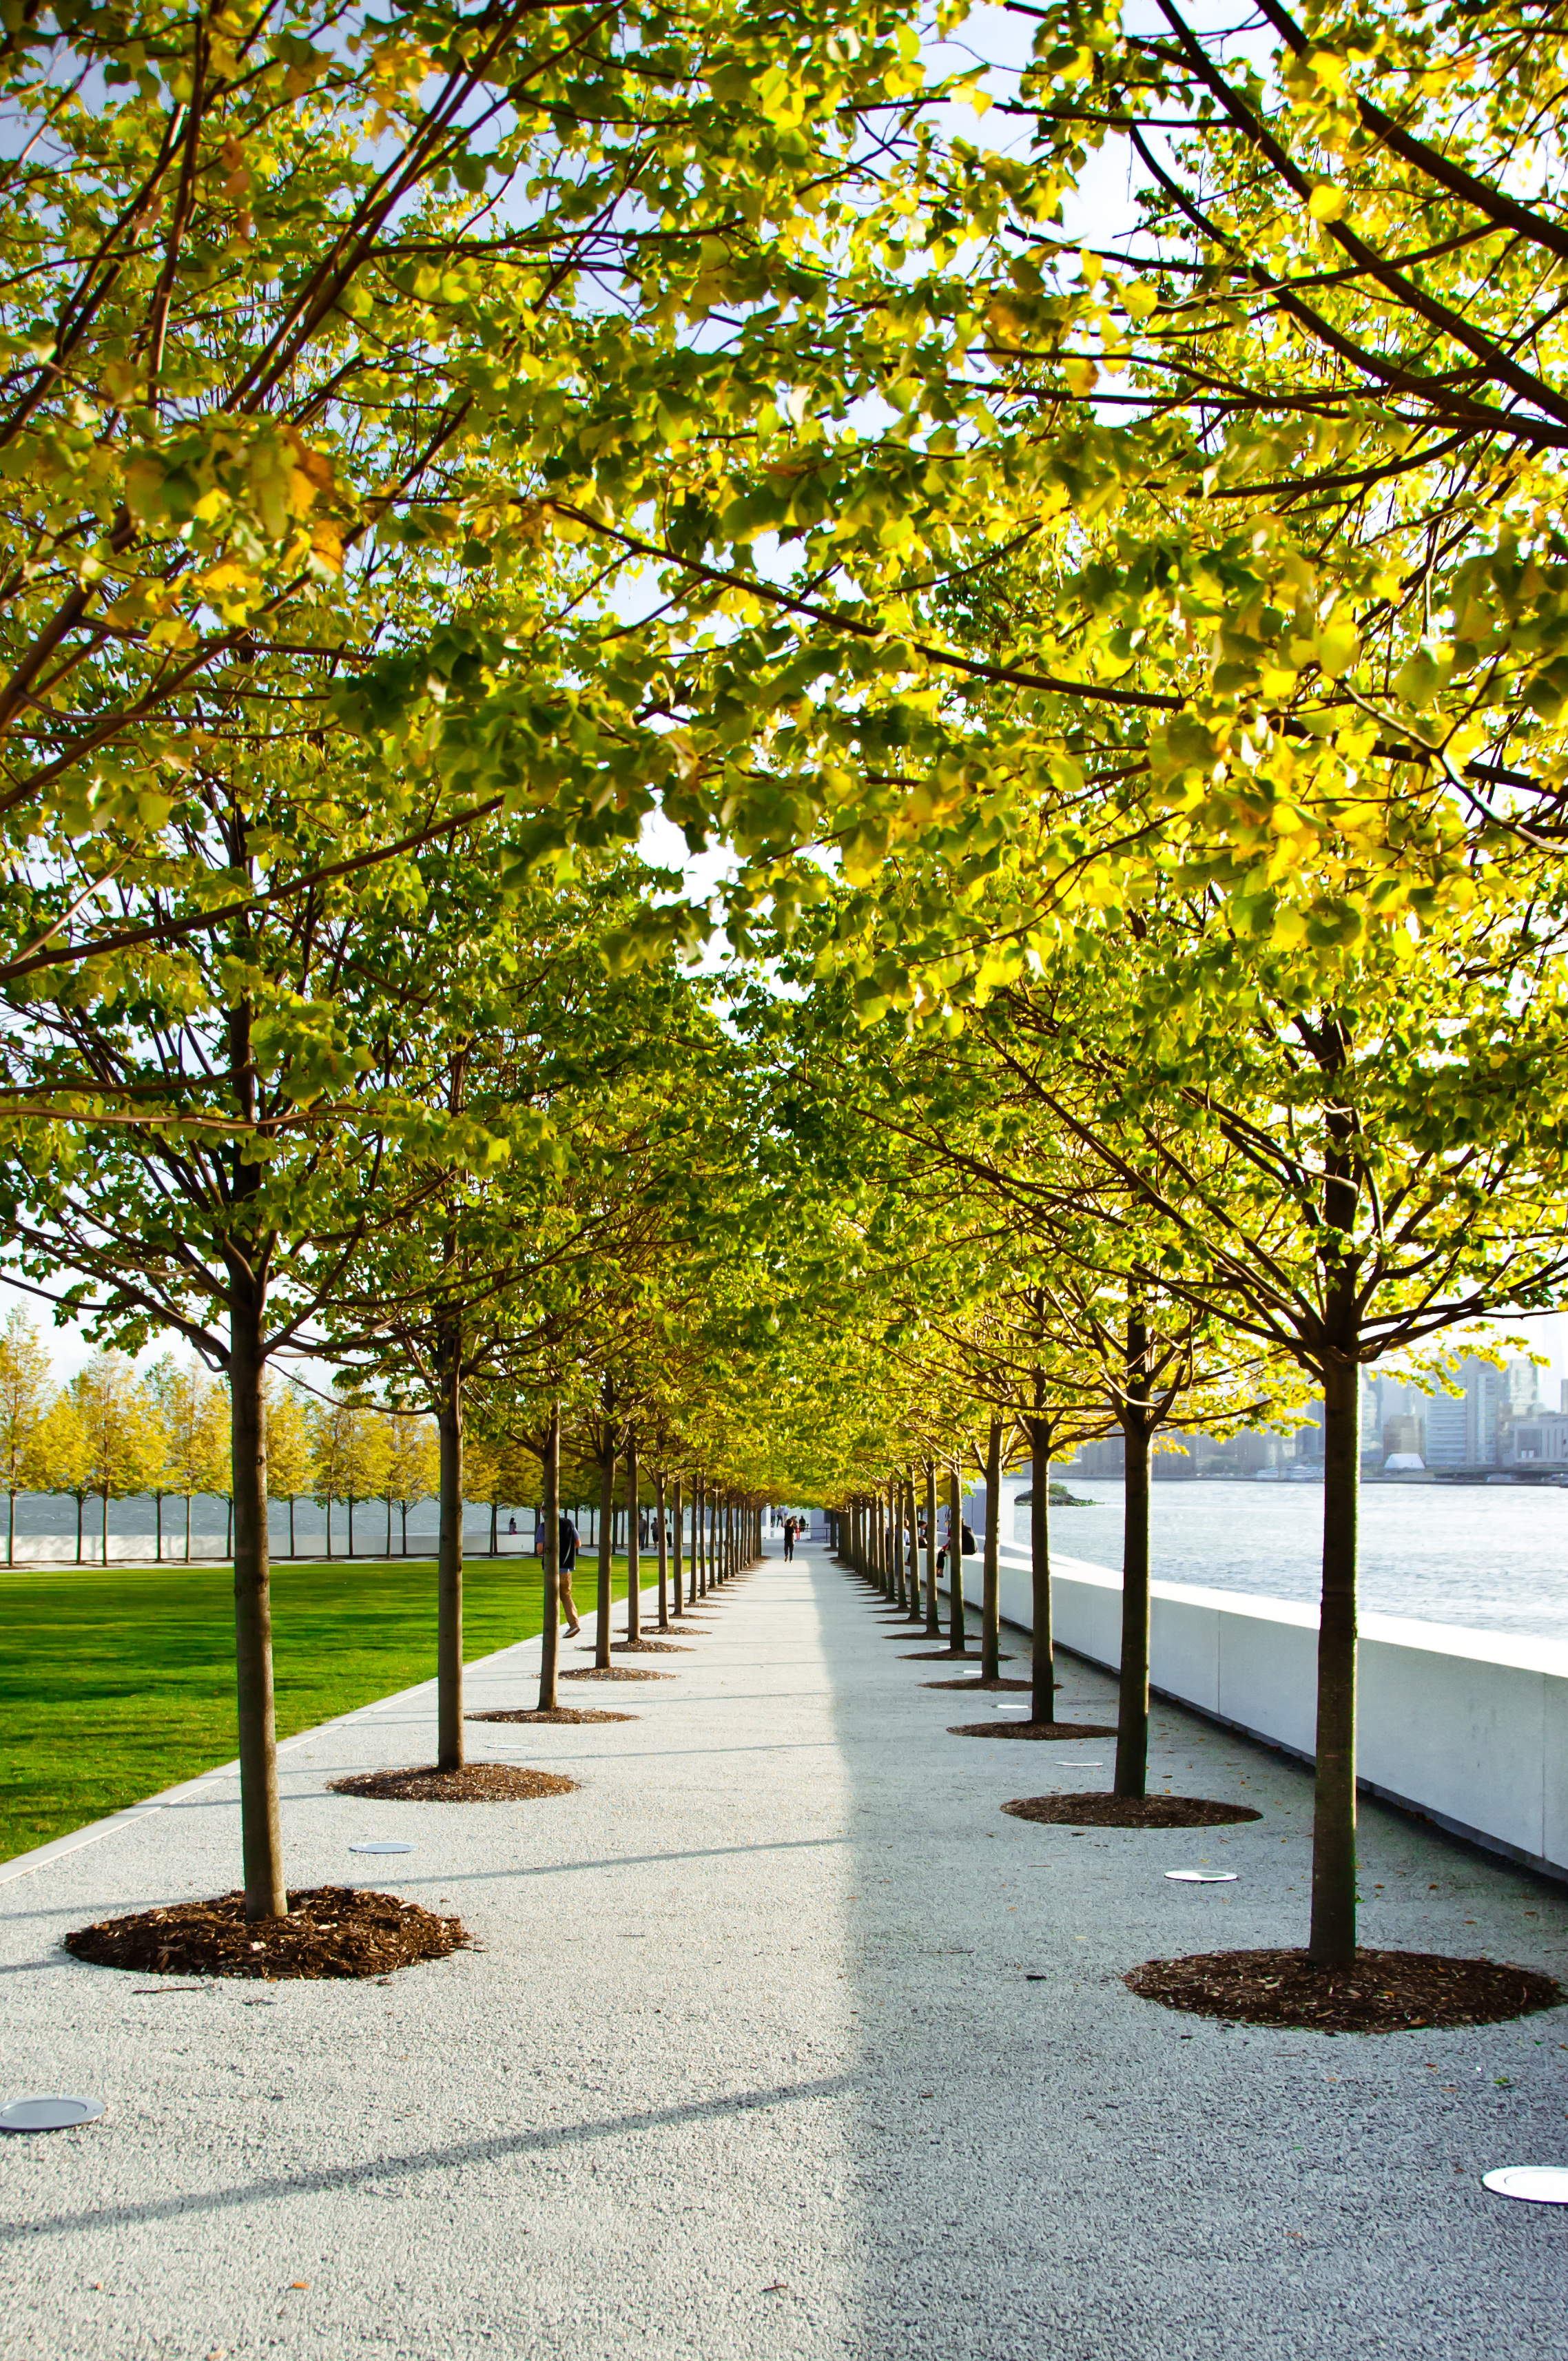 The Linden Trees in bloom. Photo © David Jiang.